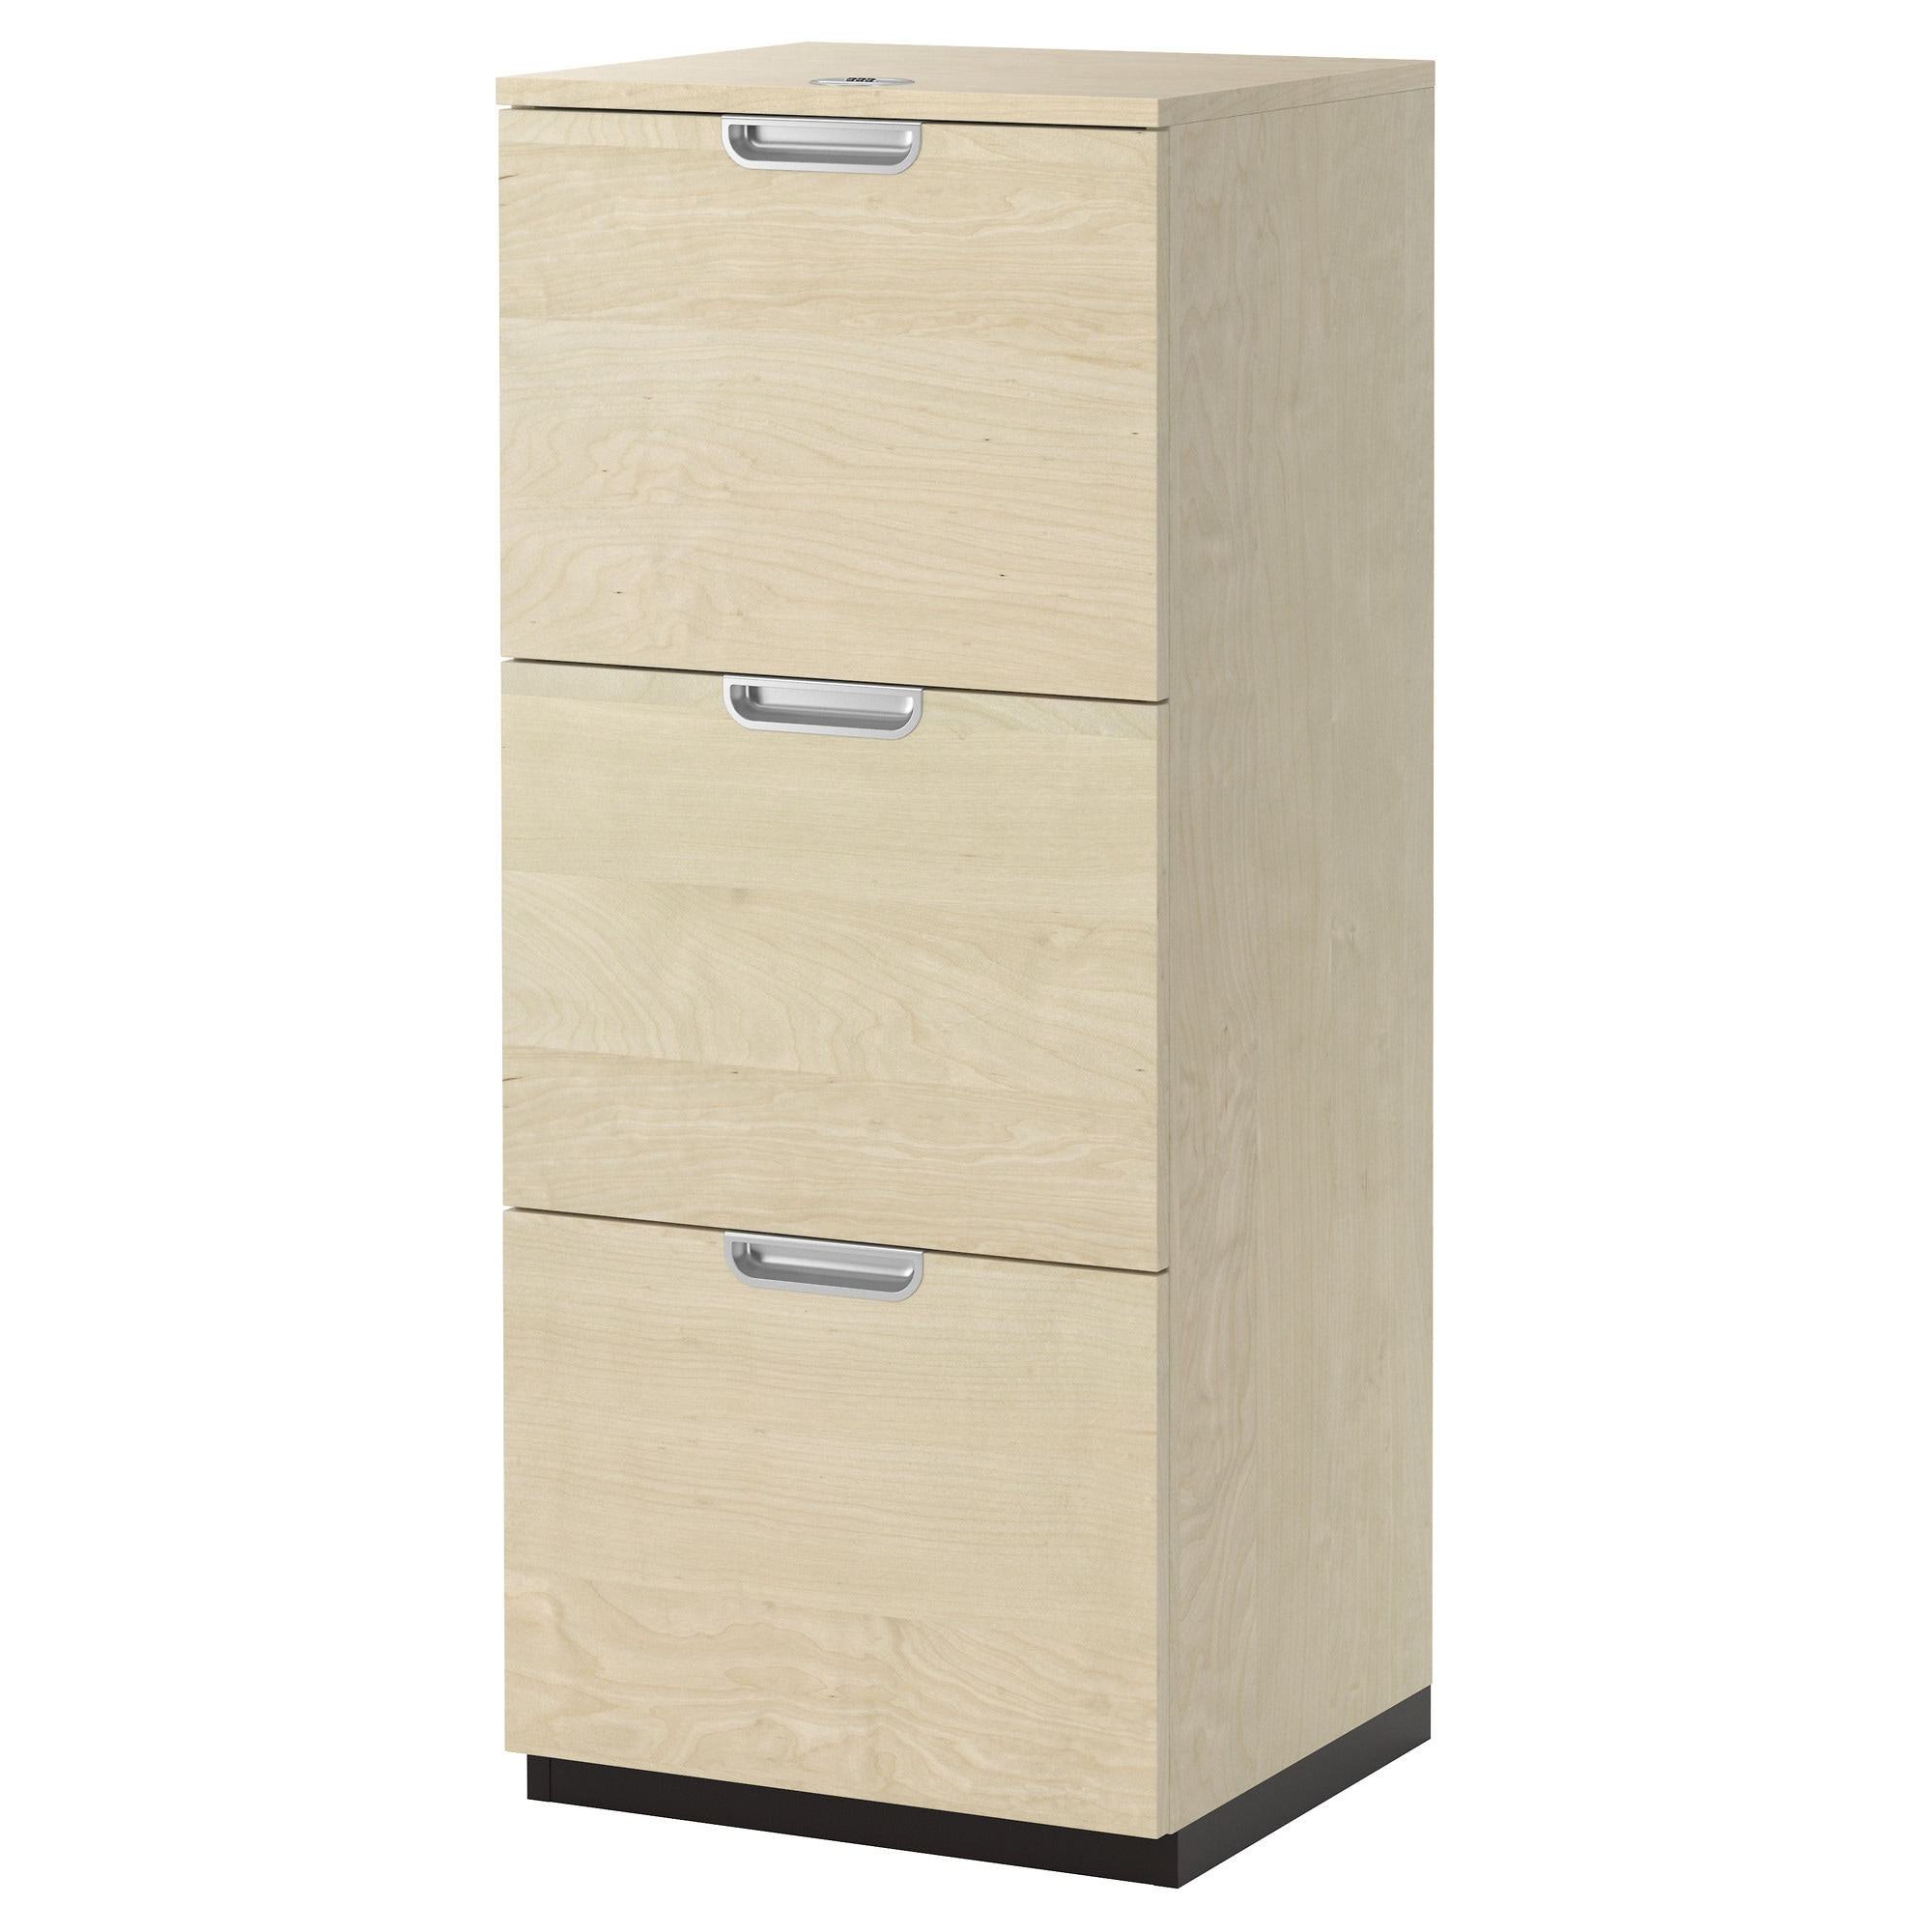 ikea office filing cabinet. Ikea Office Filing Cabinet